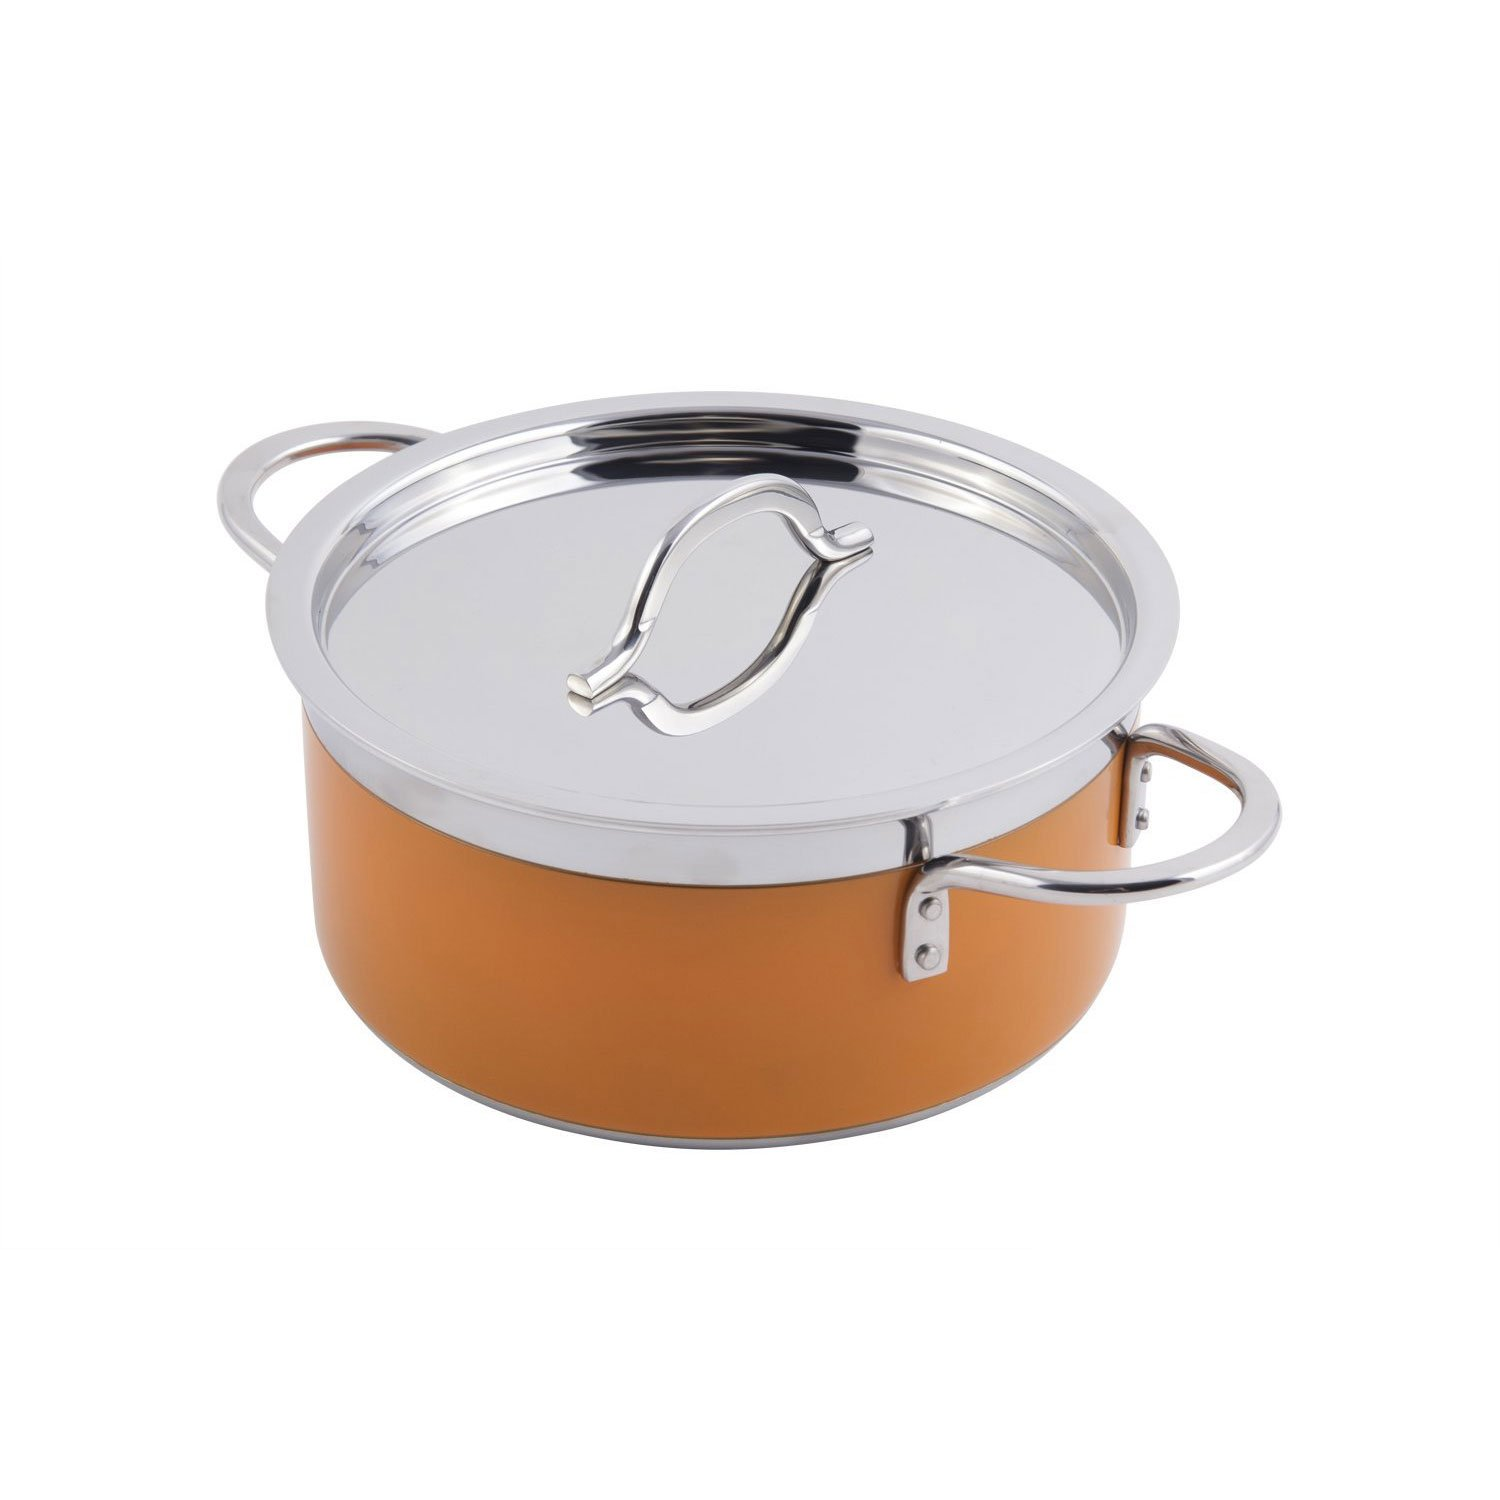 9 3/8 dia. x 4 3/8 H inch Classic Country French Collection 4.3 qt Pot with Cover Orange 1 Ct